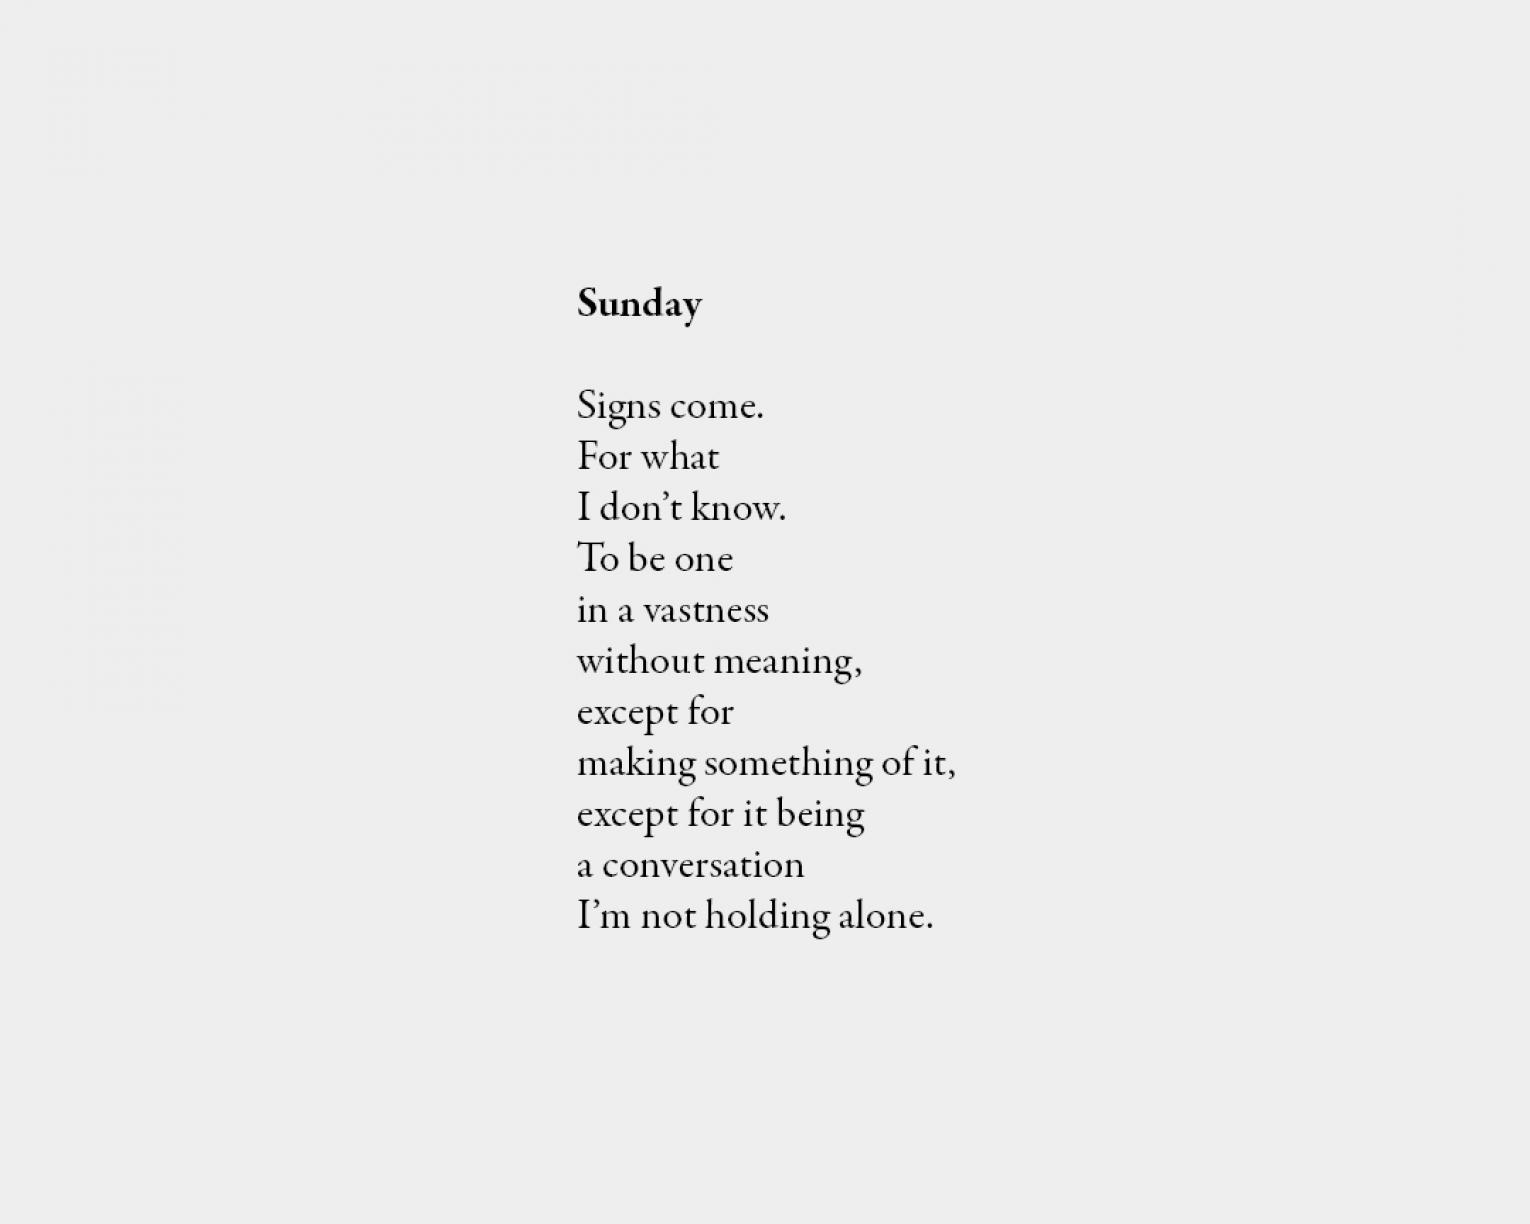 Poem: Sunday Signs come. For what I don't know. To be one in a vastness without meaning, except for making something of it, except for it being a conversation